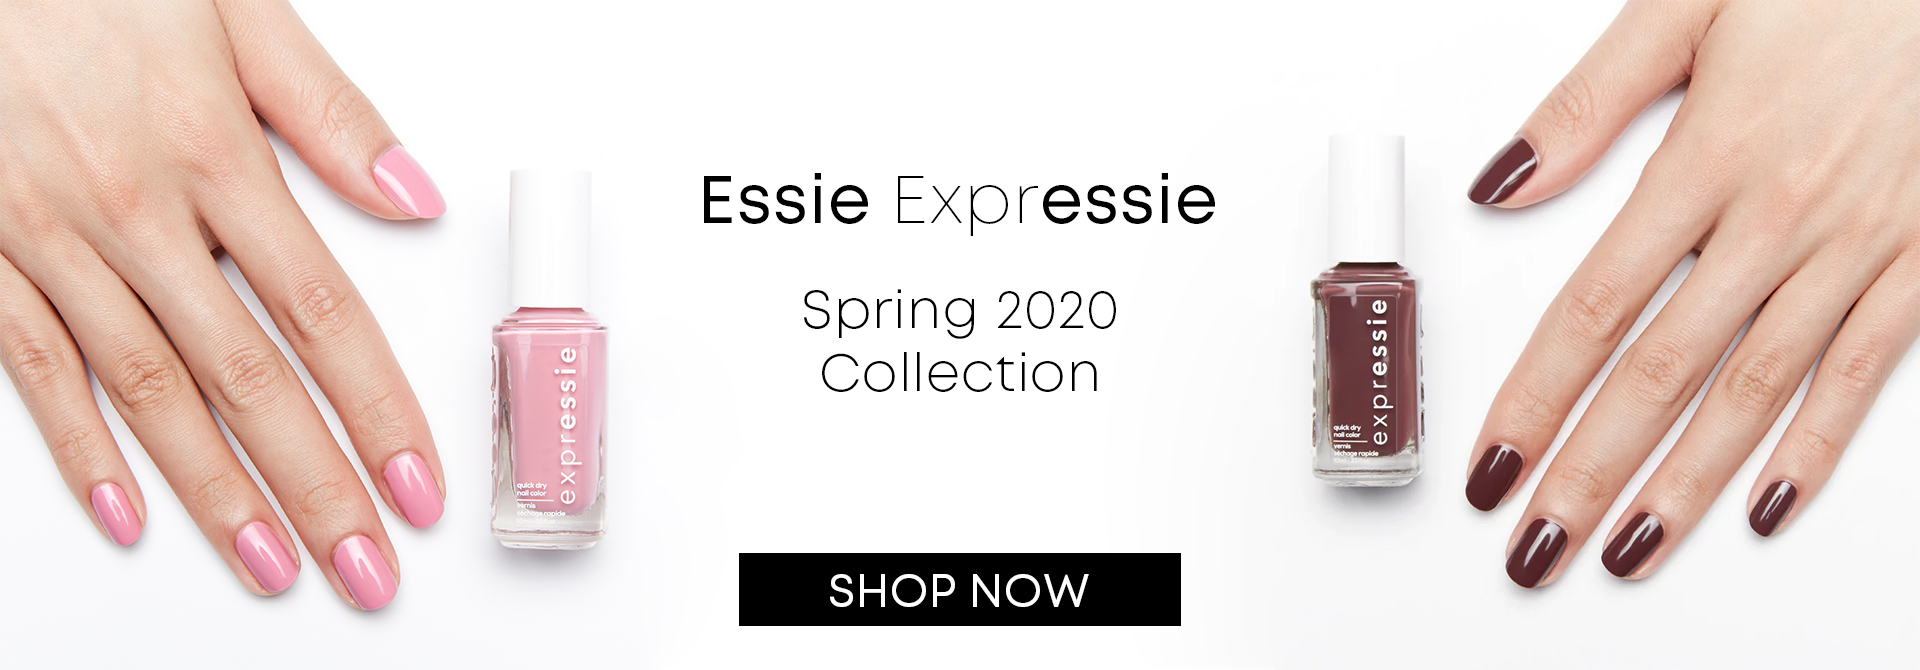 Essie - Expressie - Προϊόντα - Περιποίηση - Μαλλιά - Hair Products - Προσφορές - Offers - Le Tif